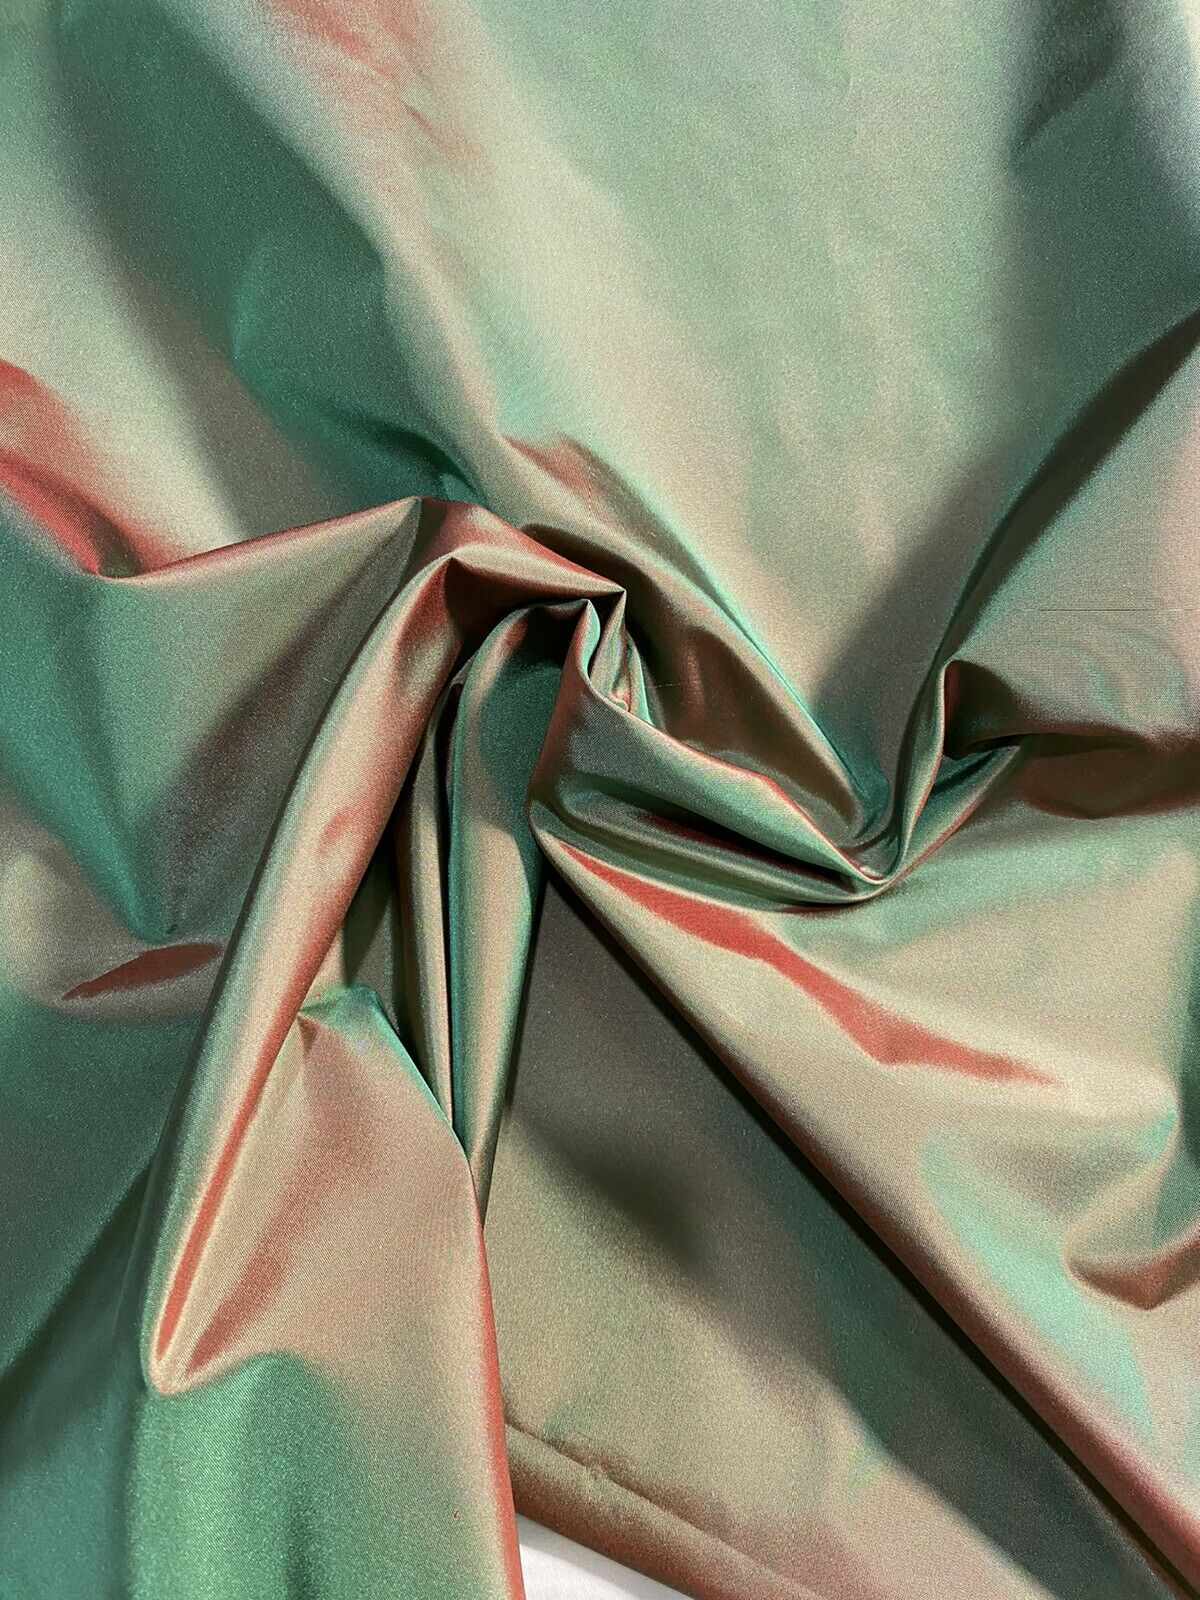 Designer 100% Silk Taffeta Fabric - Electric Green with Cinnamon Red Iridescence